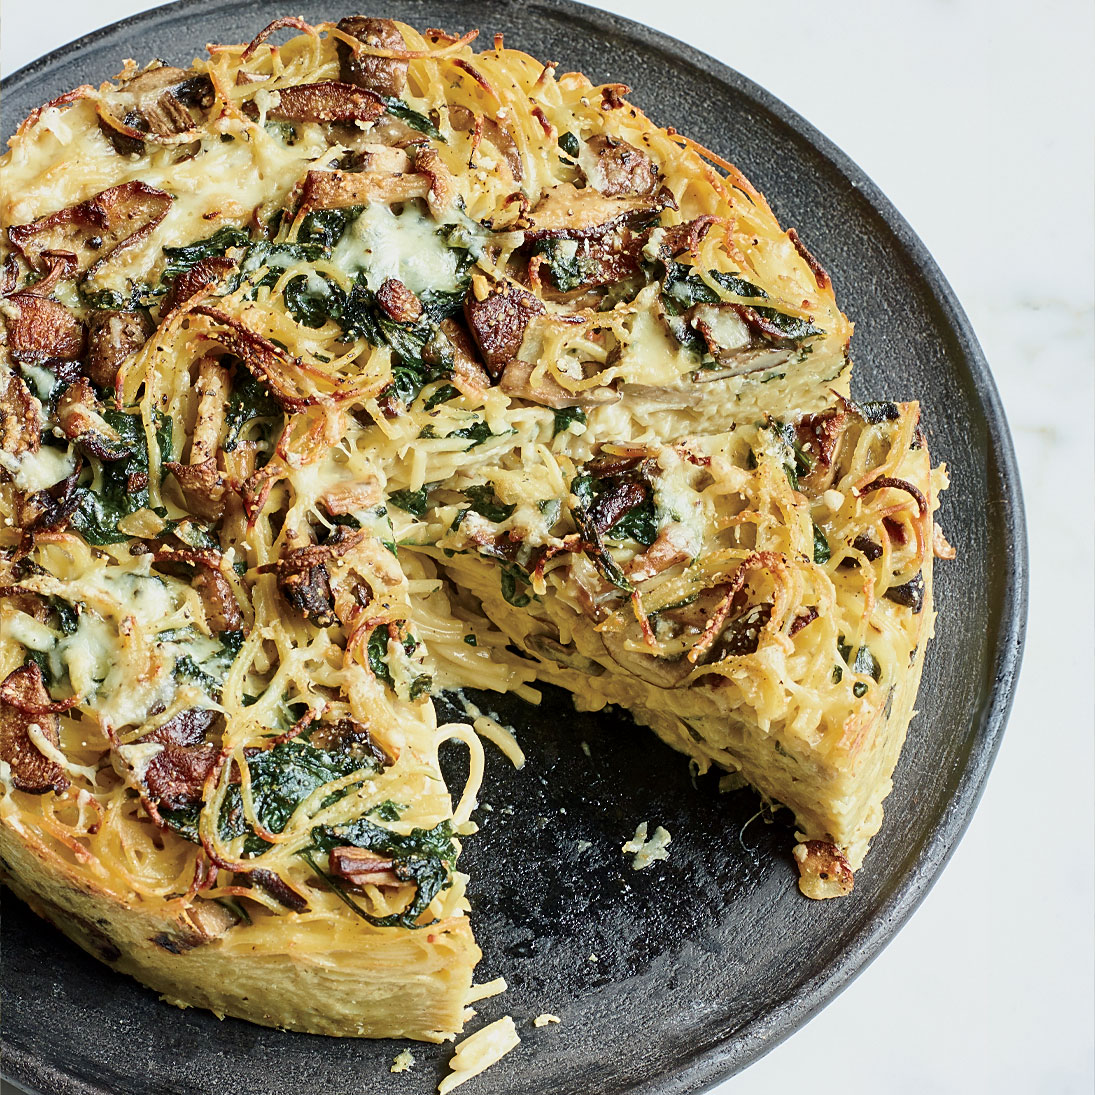 Spaghetti Pie with Wild Mushrooms and Spinach